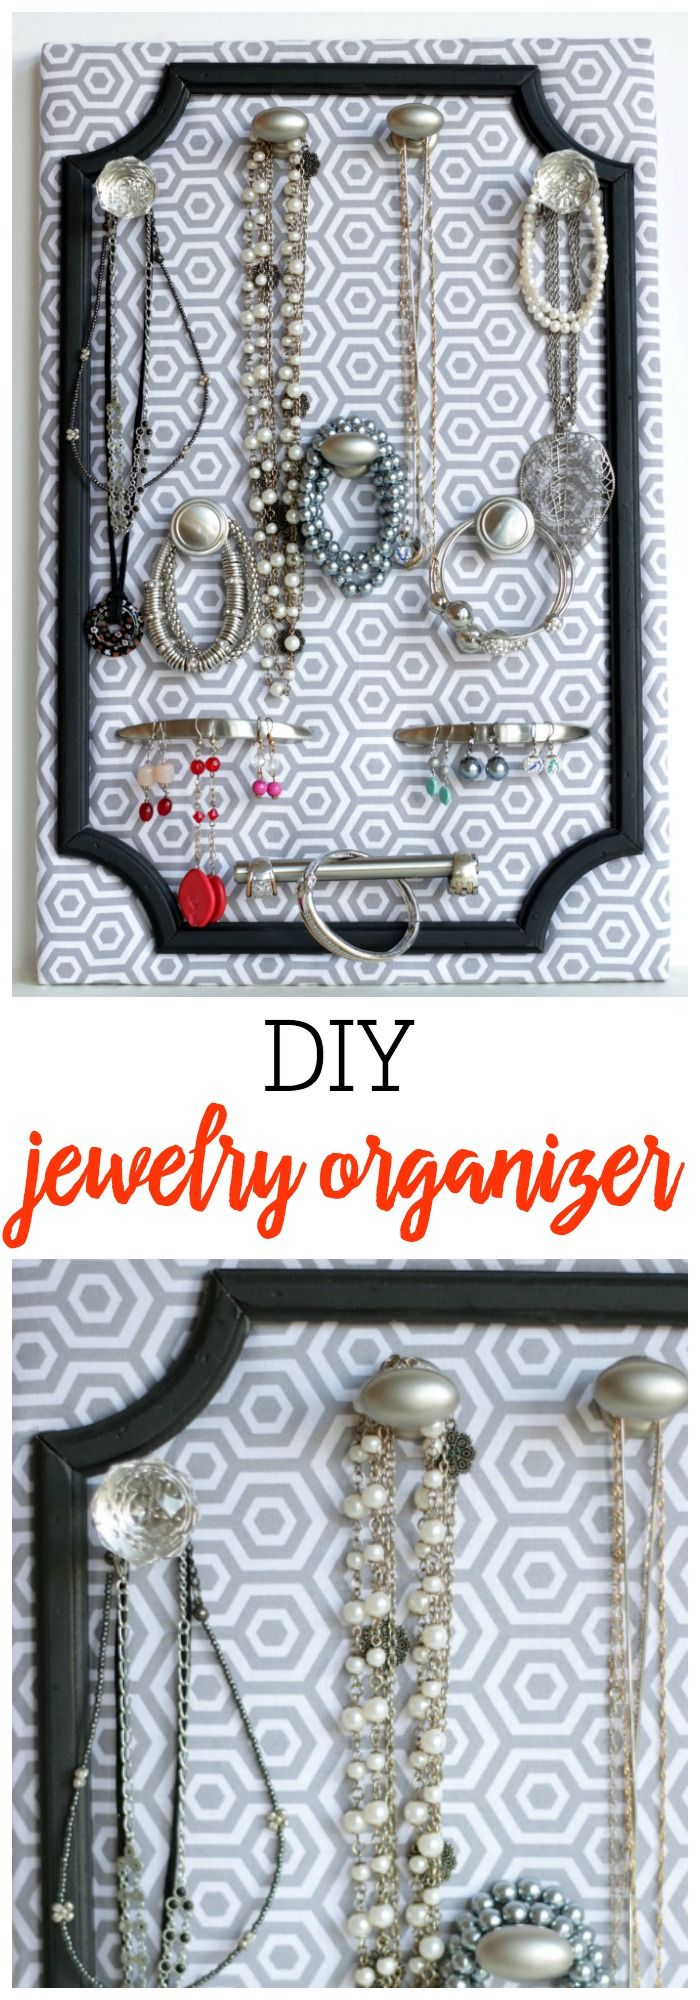 DIY Jewelry Organizer - a great idea for any home or as a gift, especially for a birthday gift or Mother's Day Gift!